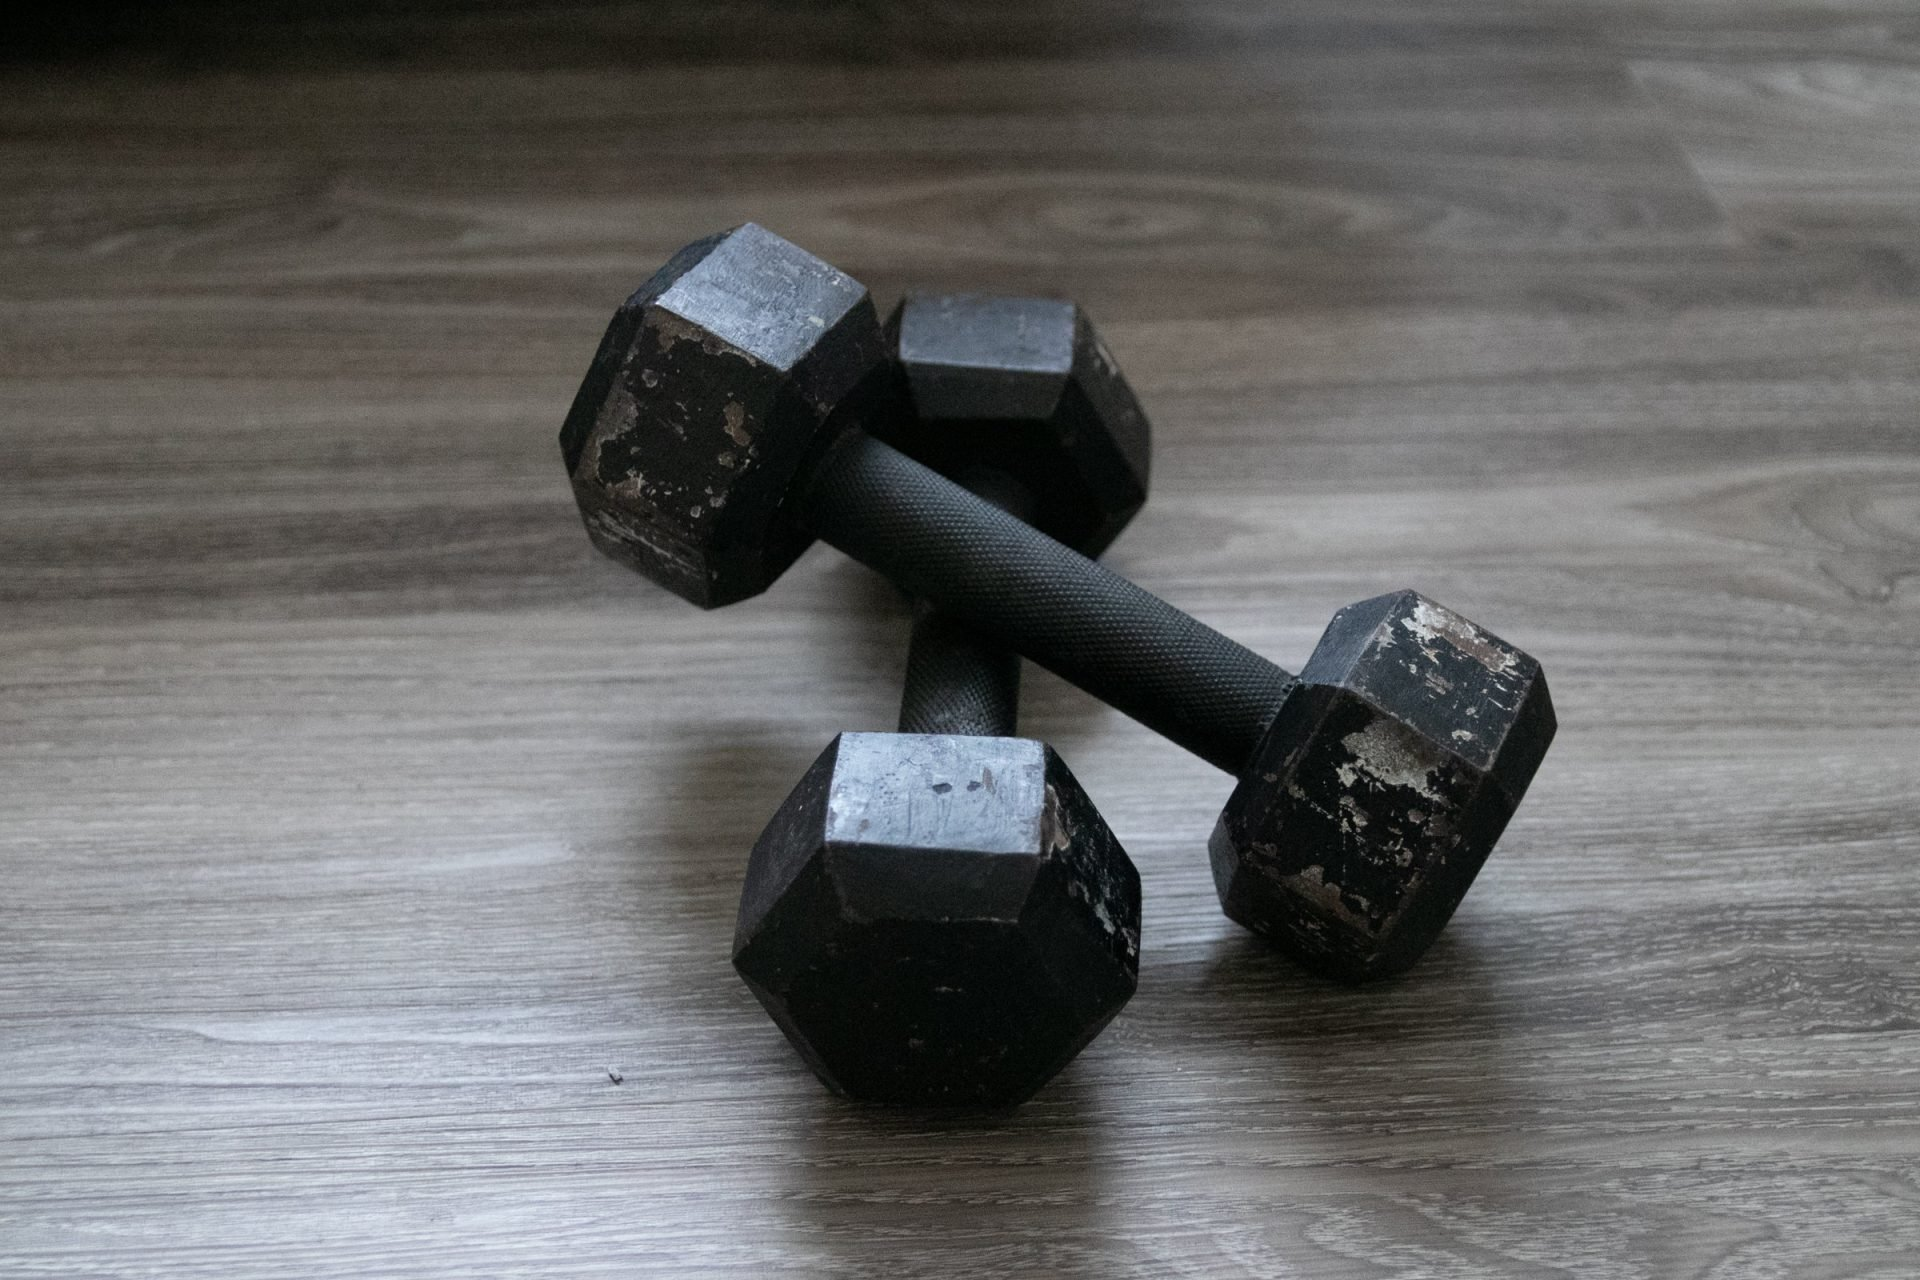 Pair Of Scratched Black Dumbbells On Wooden Surface